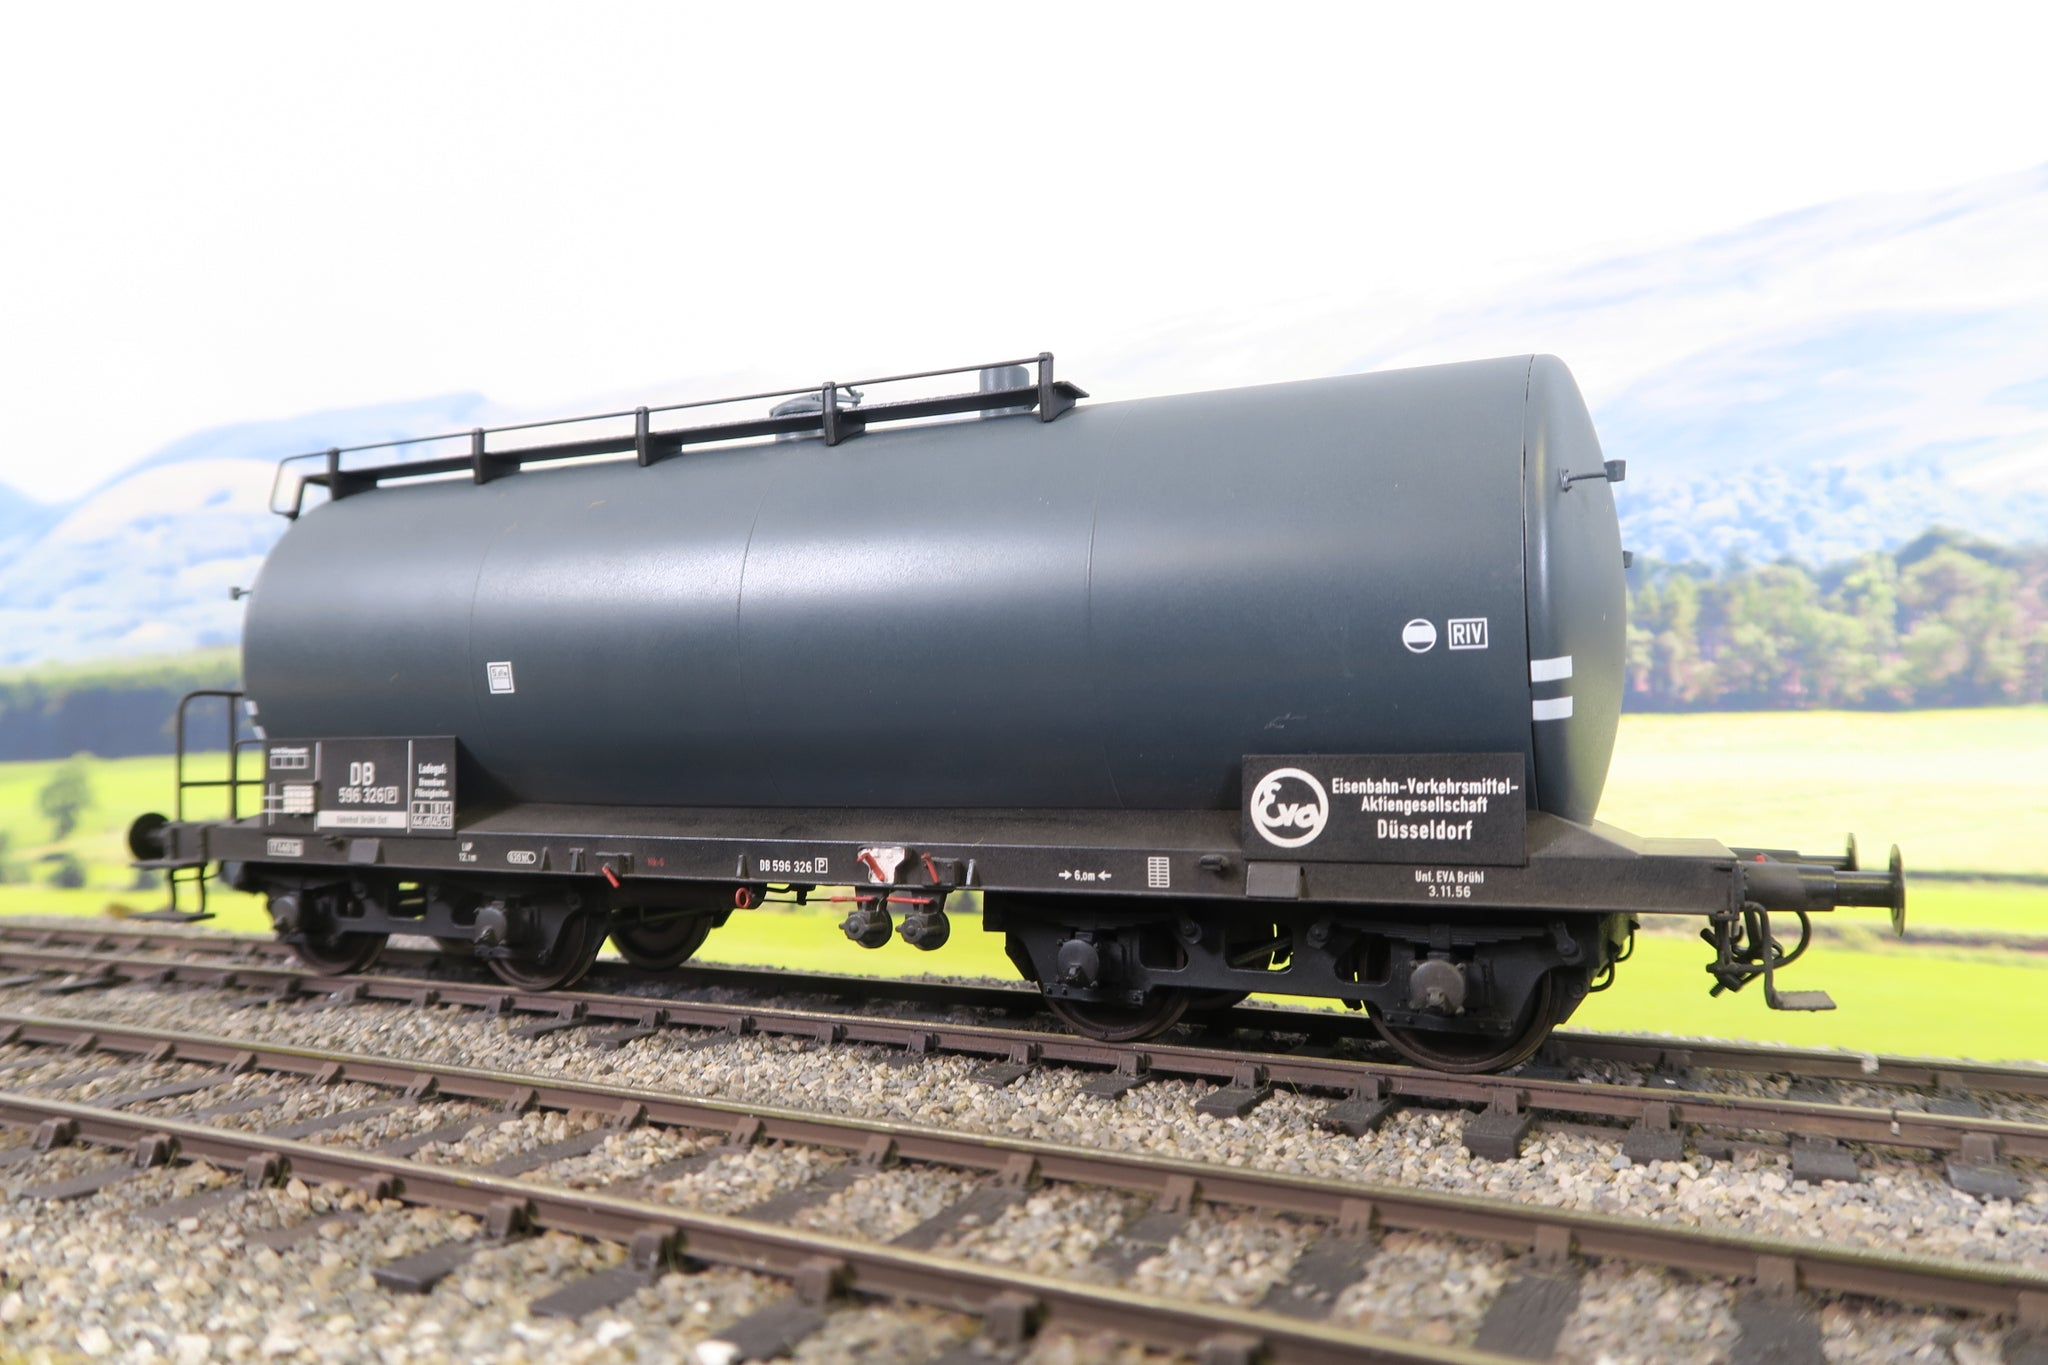 Hubner (or similar) O Gauge DB Tank Wagon '596 326'